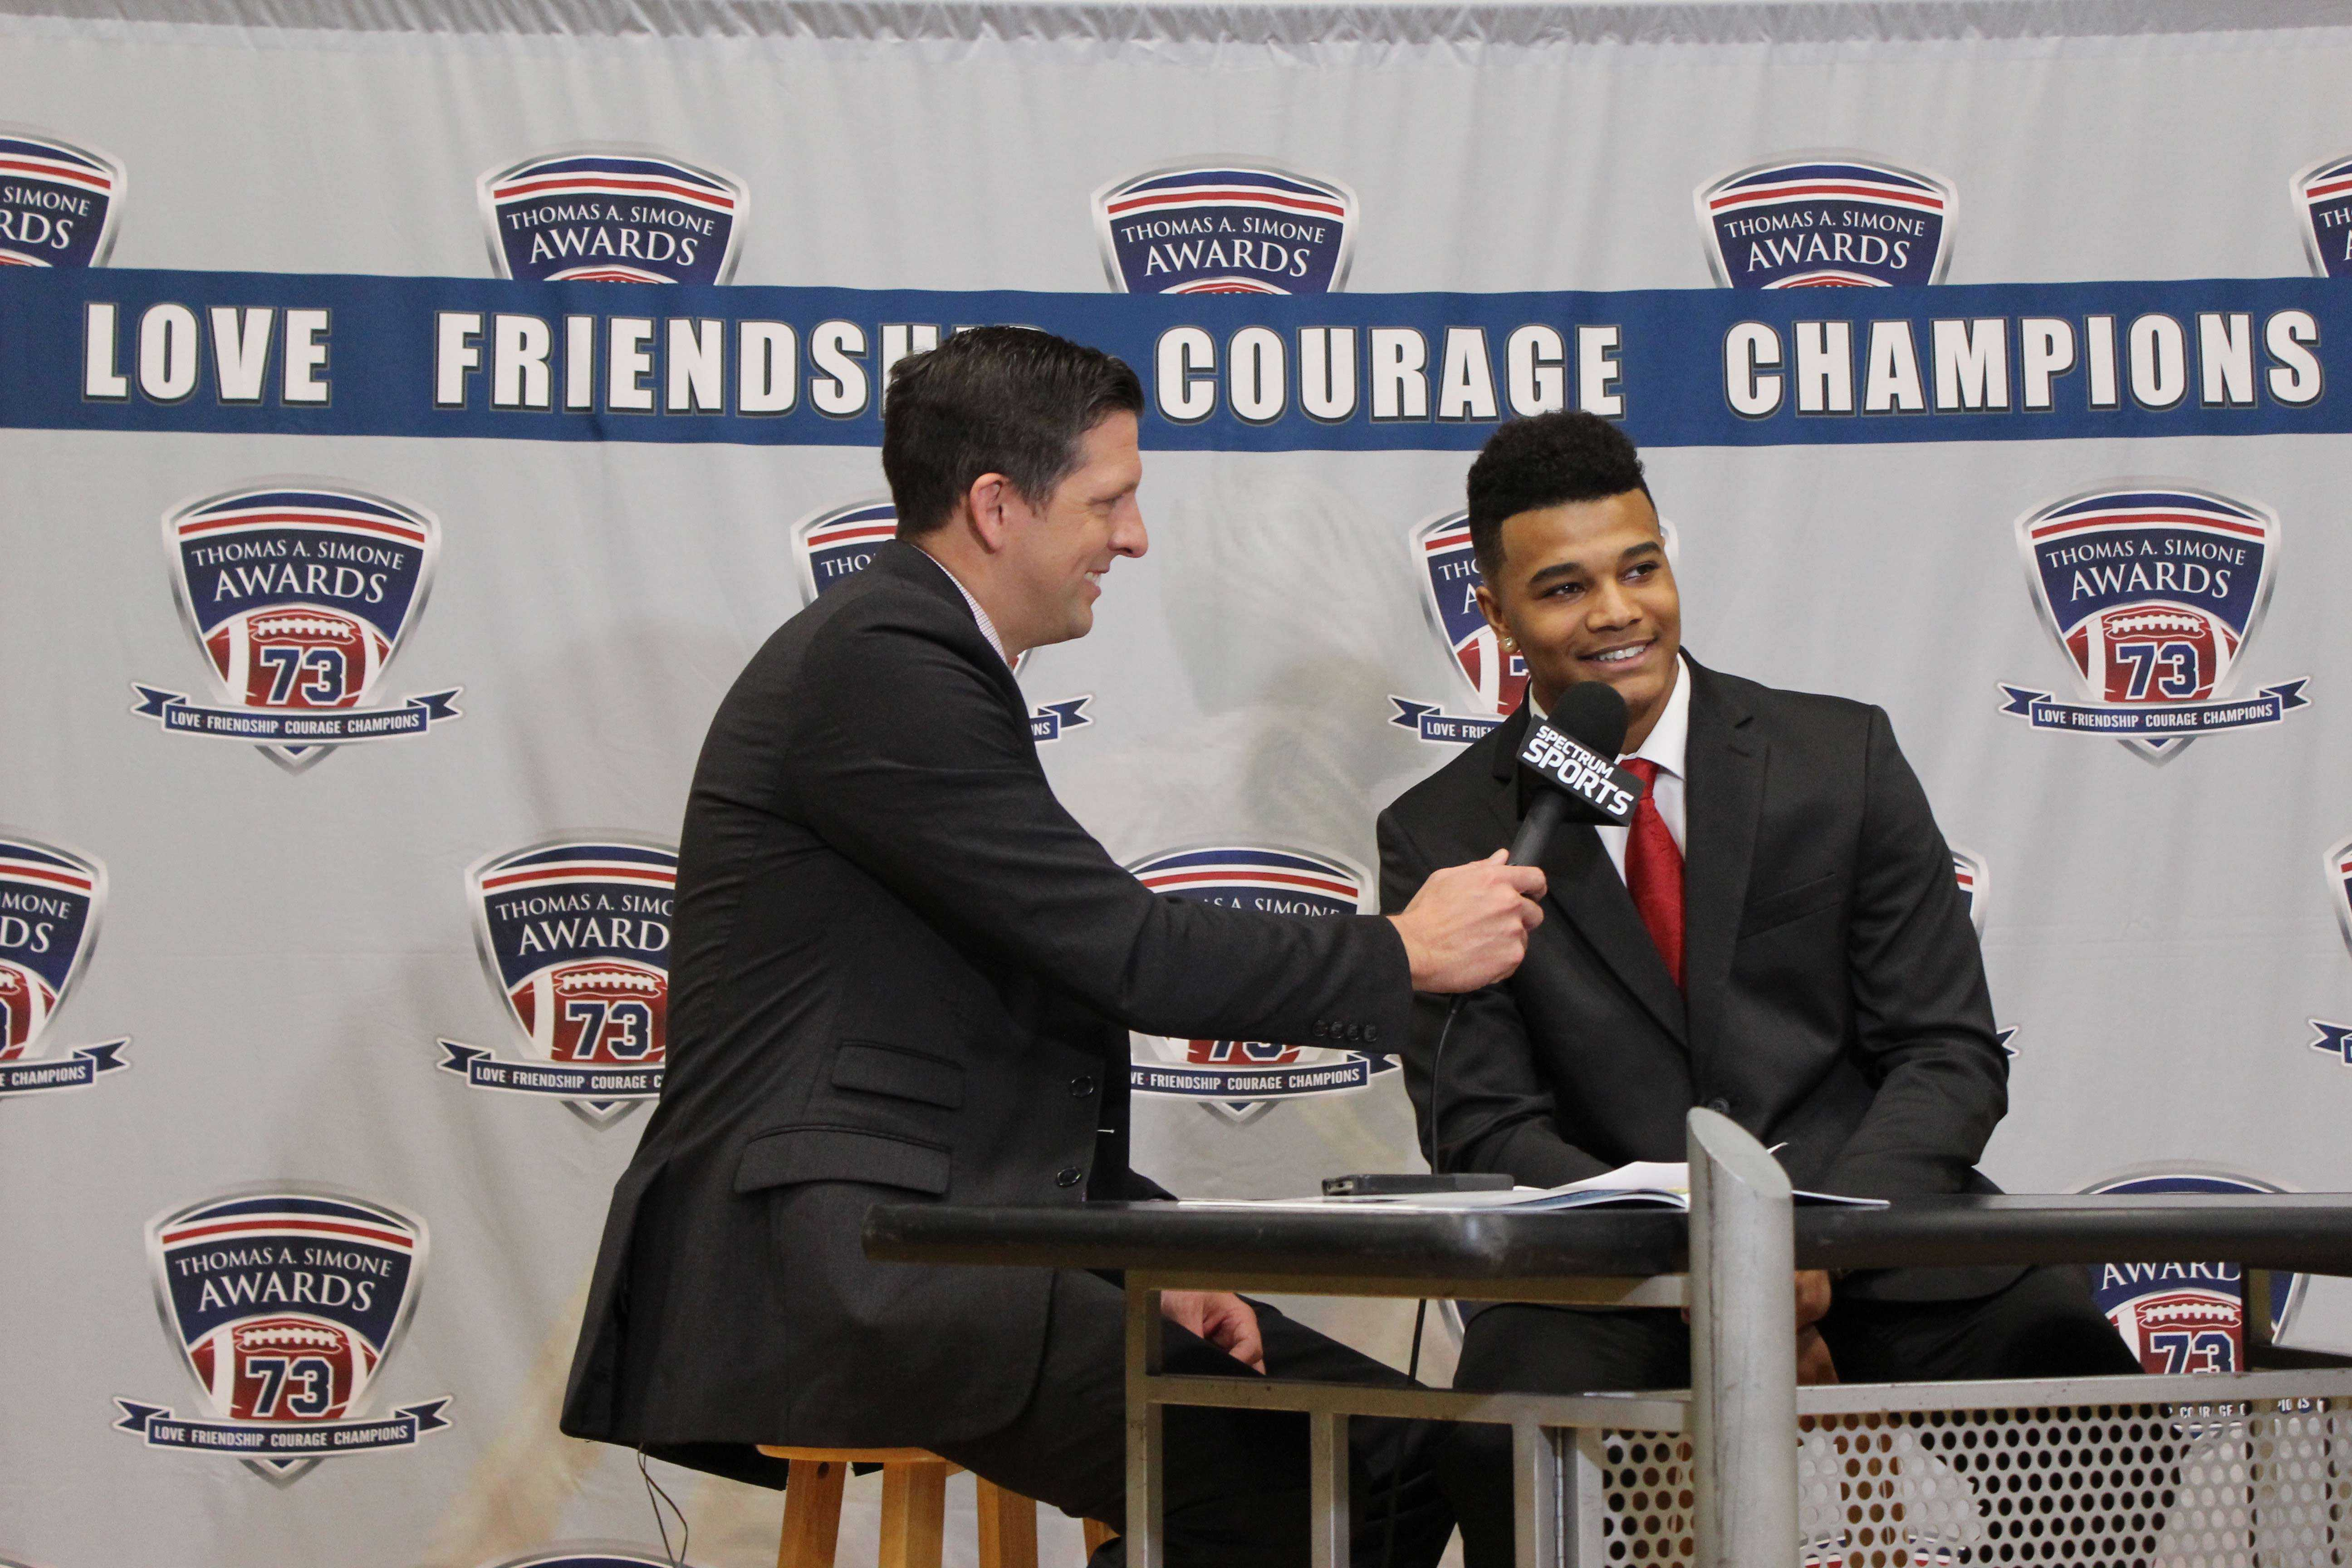 Senior Julian Ross was interviewed after being awarded the Thomas A. Simone award in the falcon fieldhouse on Dec. 6 2016.  This is considered the Heisman Award of high school football and Ross was the first football player from Staley to win this award.